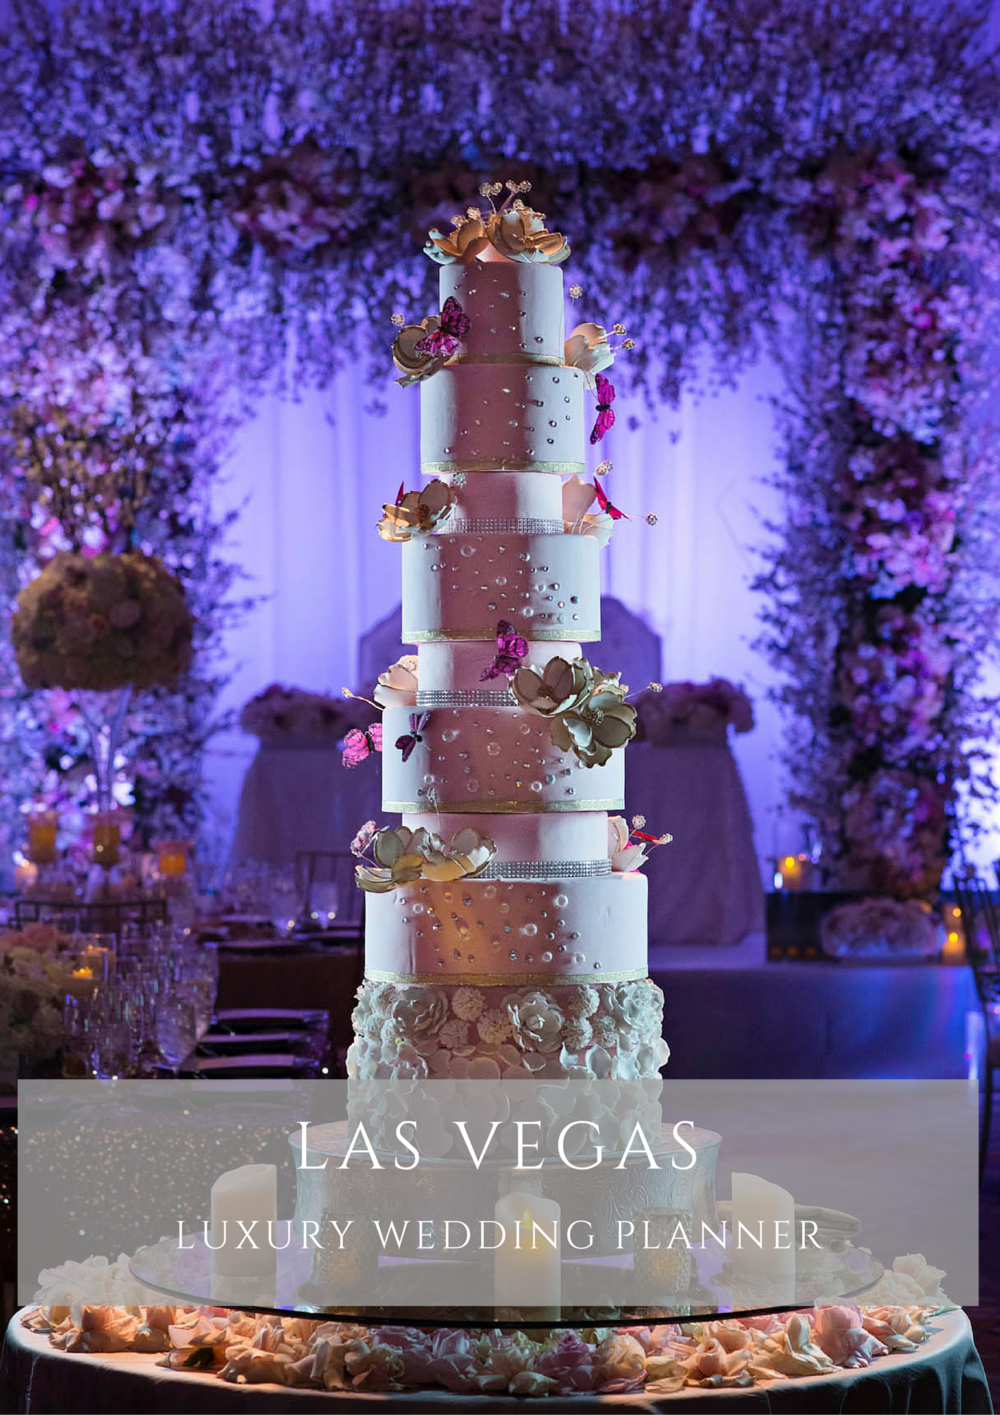 Las Vegas Wedding Planner.  AEE is the premiere luxury wedding planner in Las Vegas.  She is the first choice for socialites, celebrities, and the couple that wants to feel like one in a million!